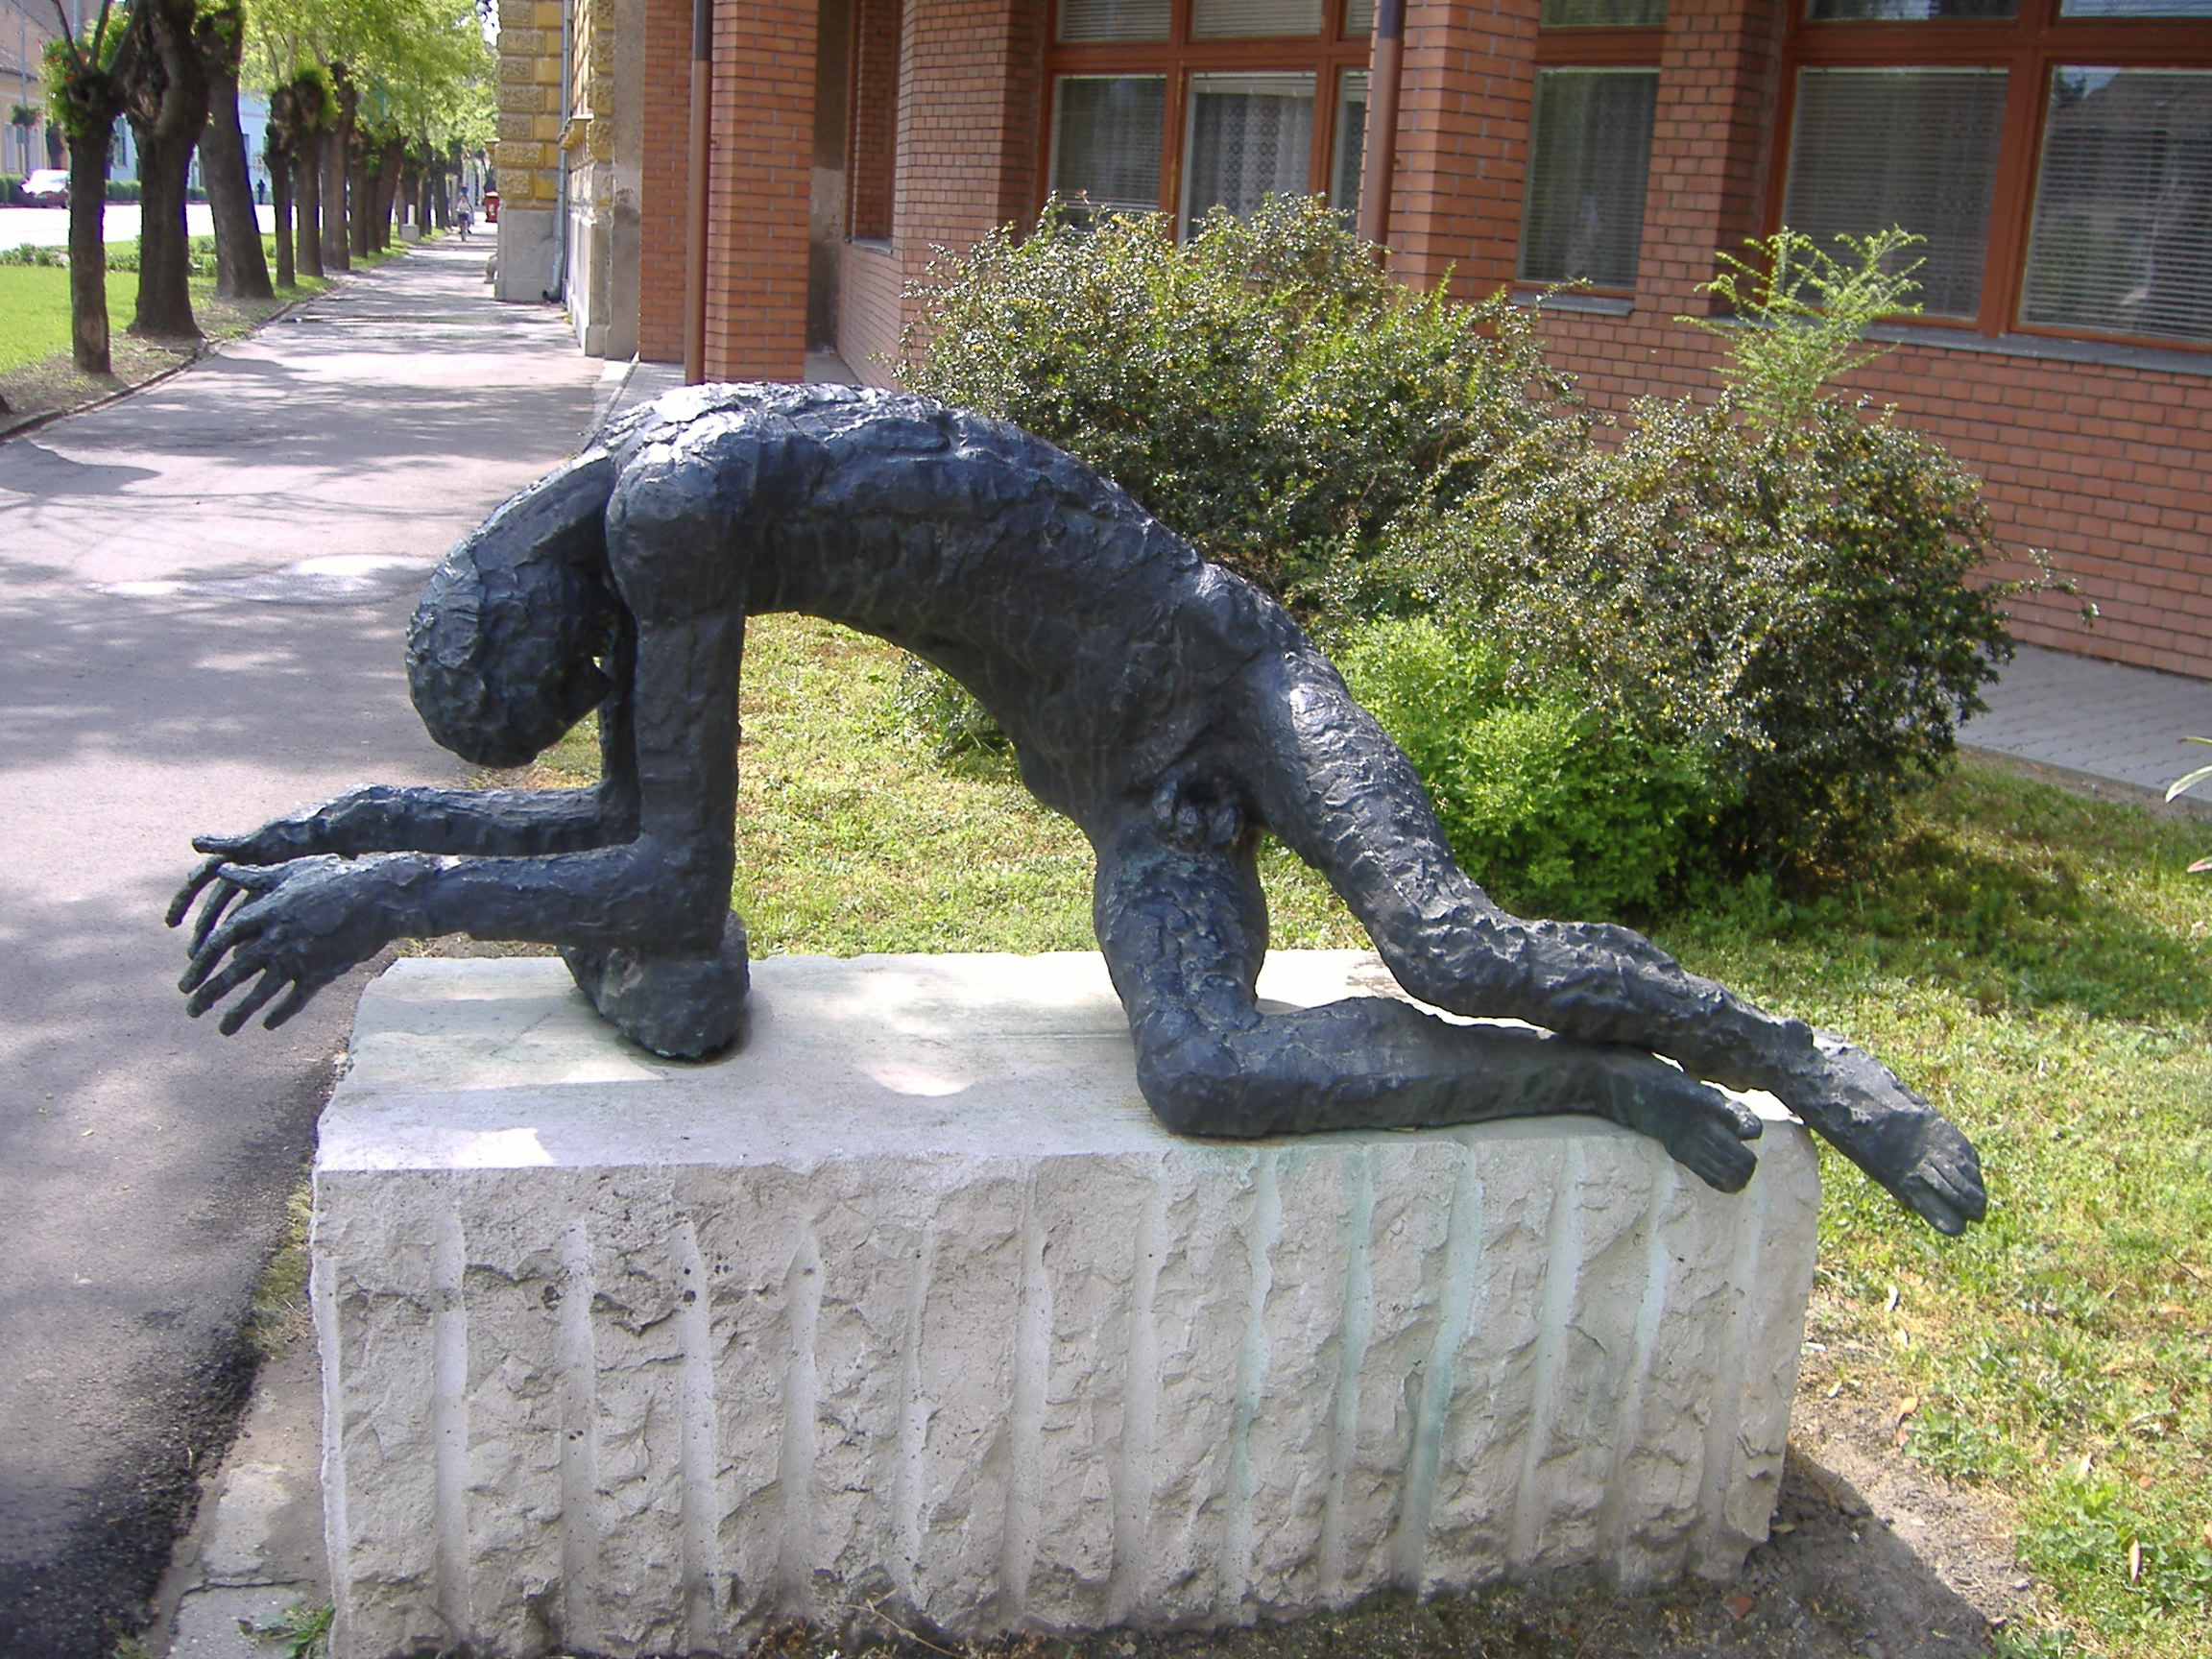 The statue of the Tired Man